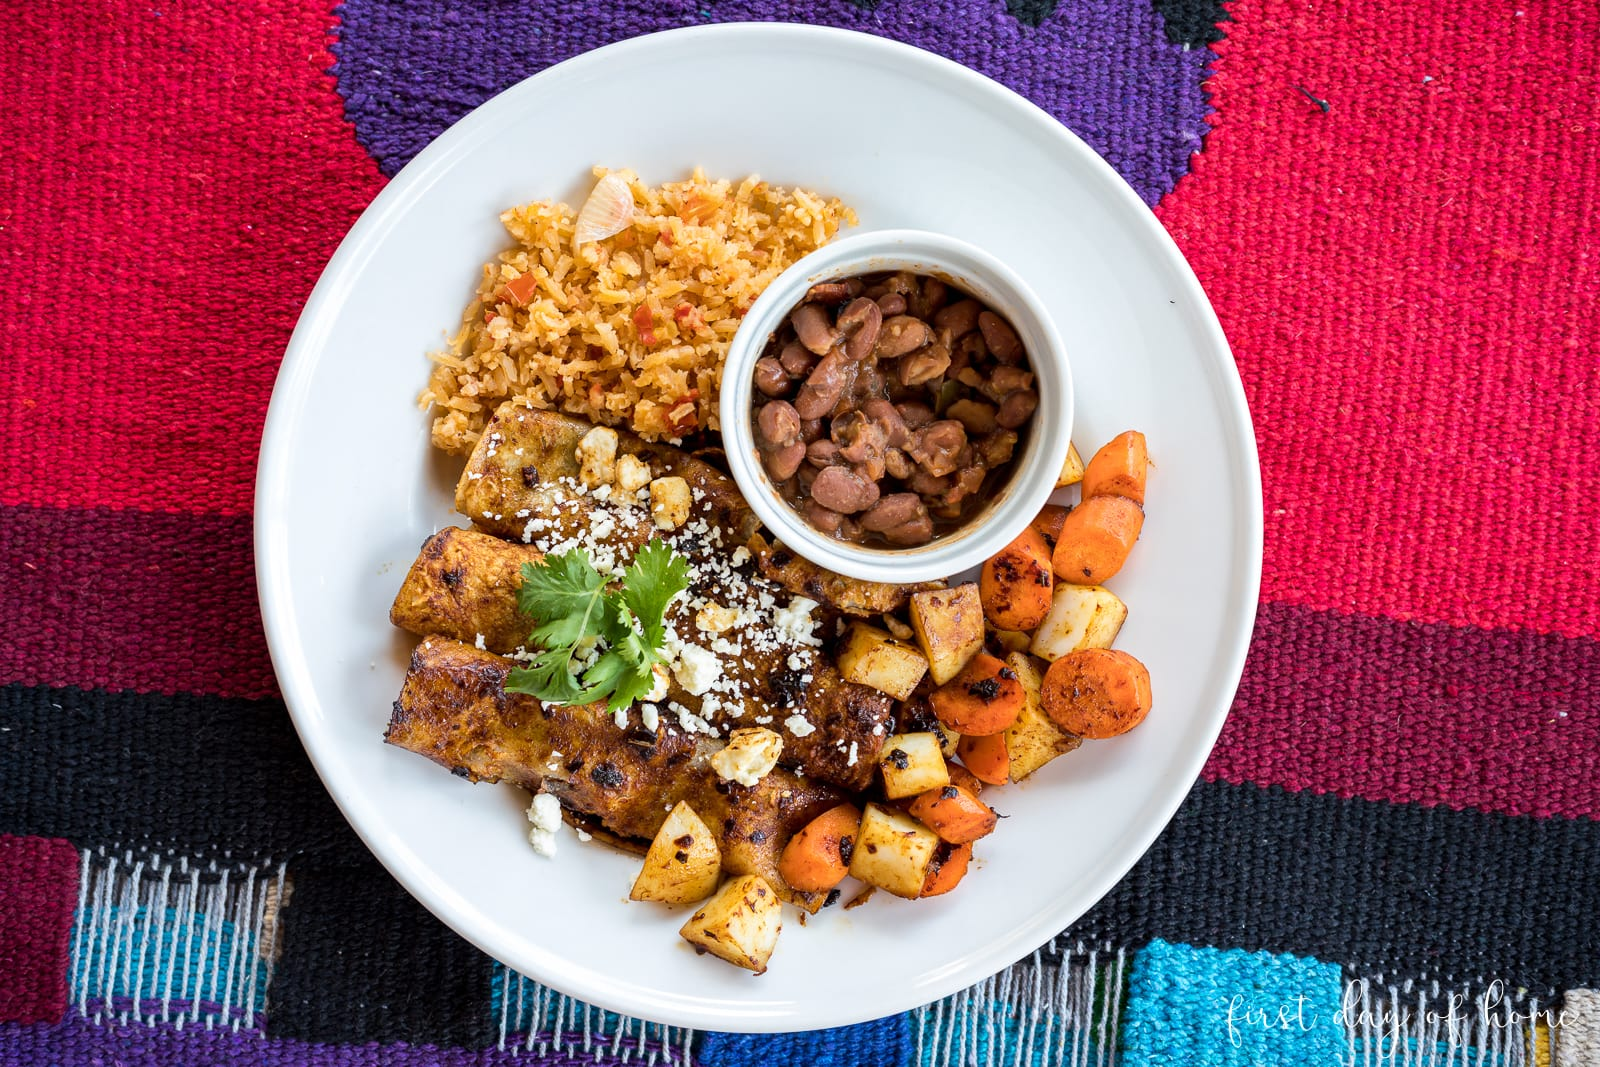 Red enchiladas topped with queso fresco cheese and cilantro, served with sides of diced potatoes/carrots, rice and beans